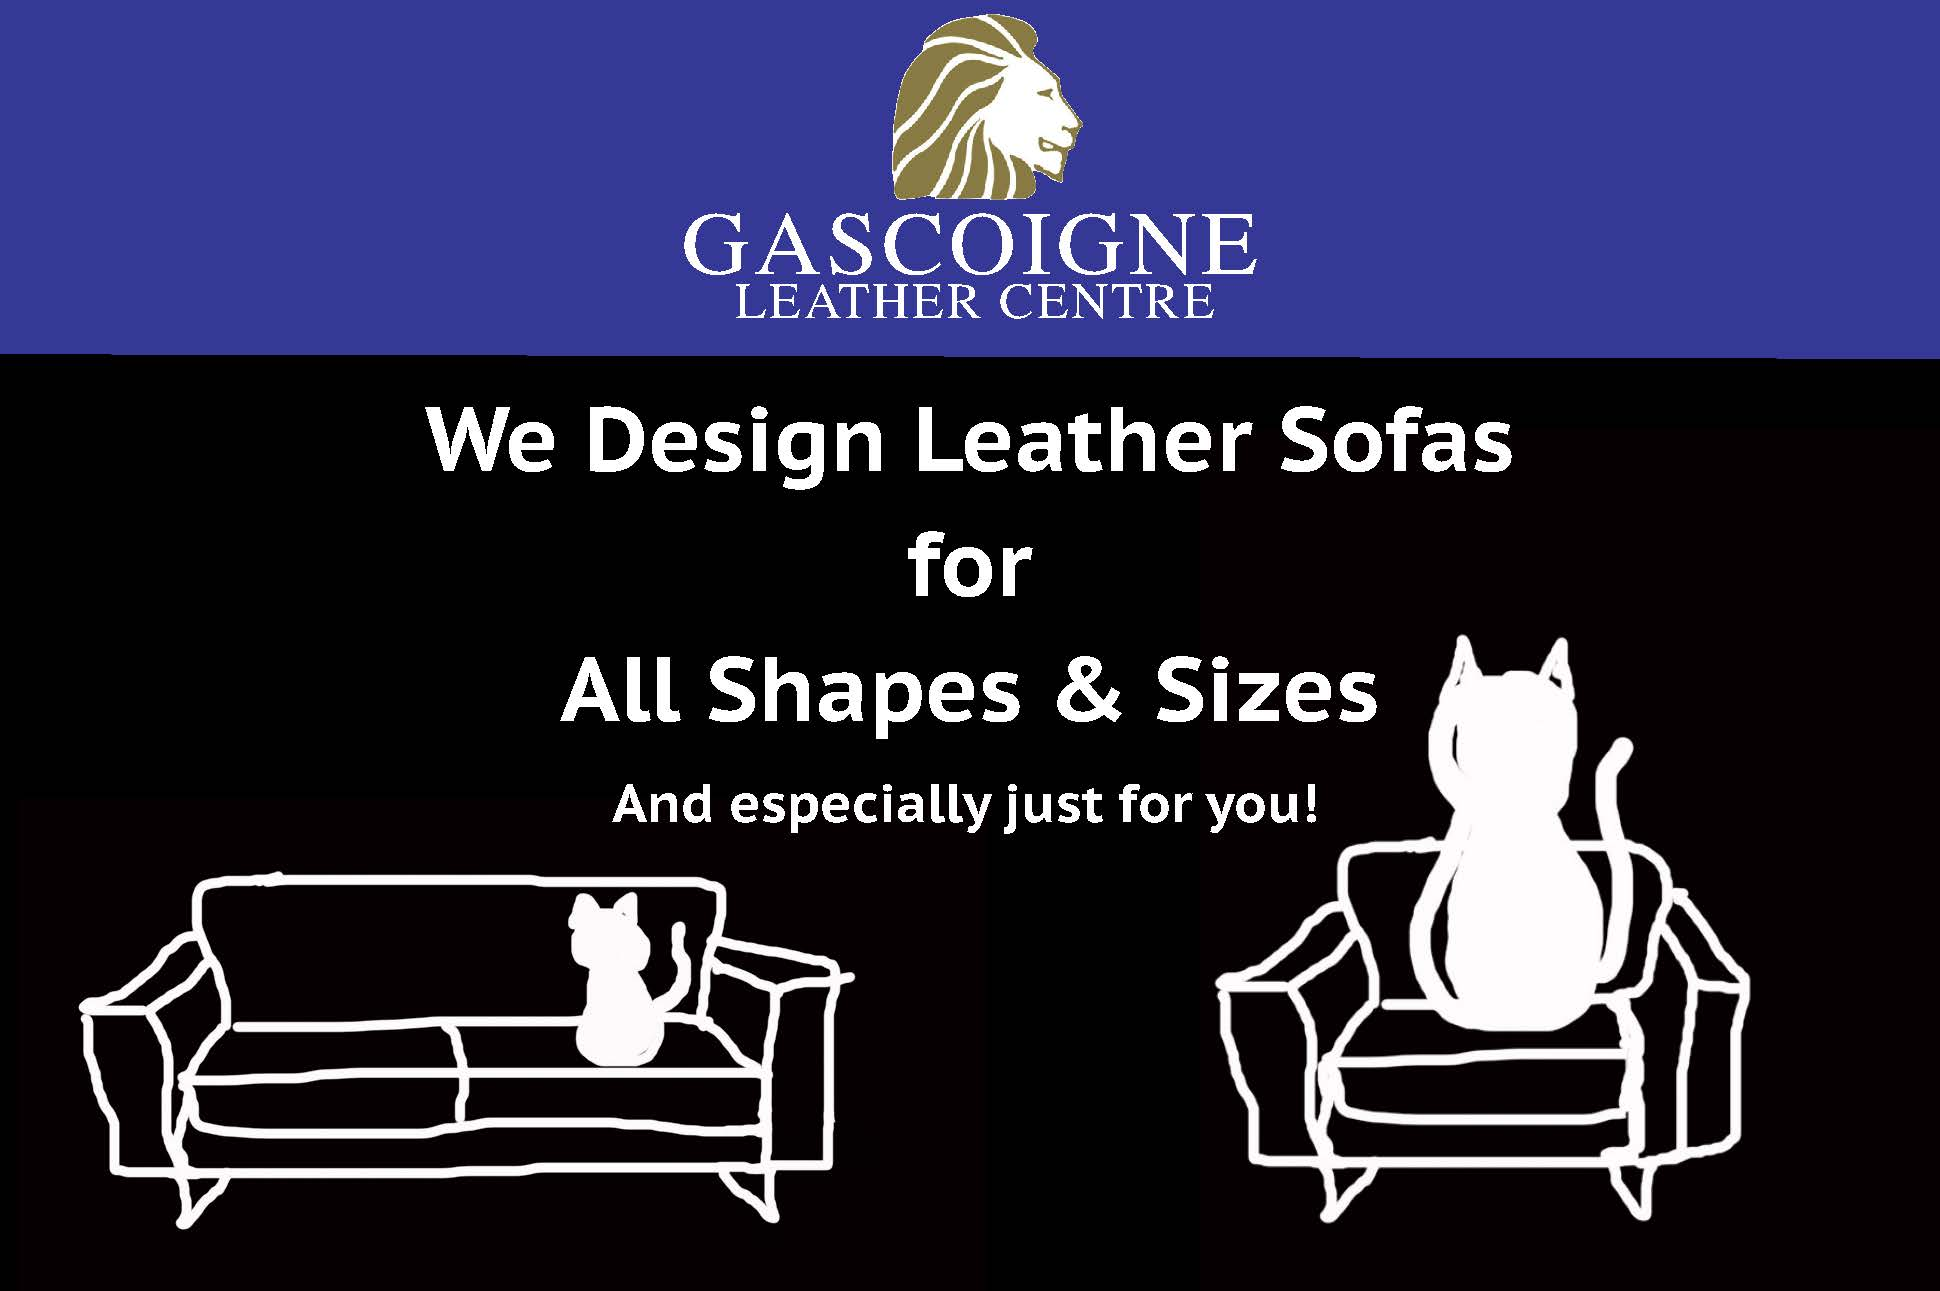 We design leather sofas for all shapes & sizes